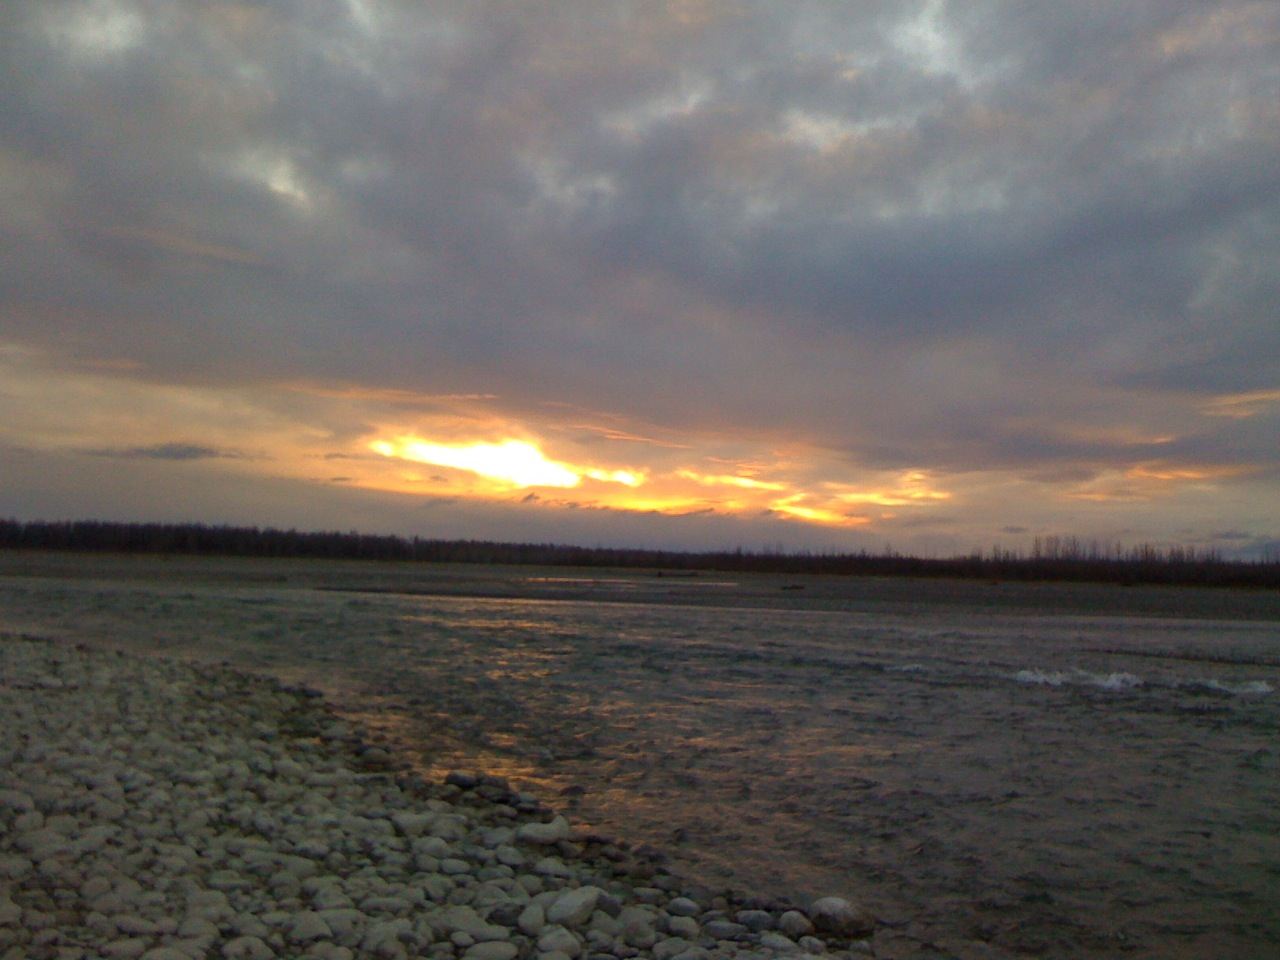 Sunset at the Talkeetna rivers, October 21, 2010.